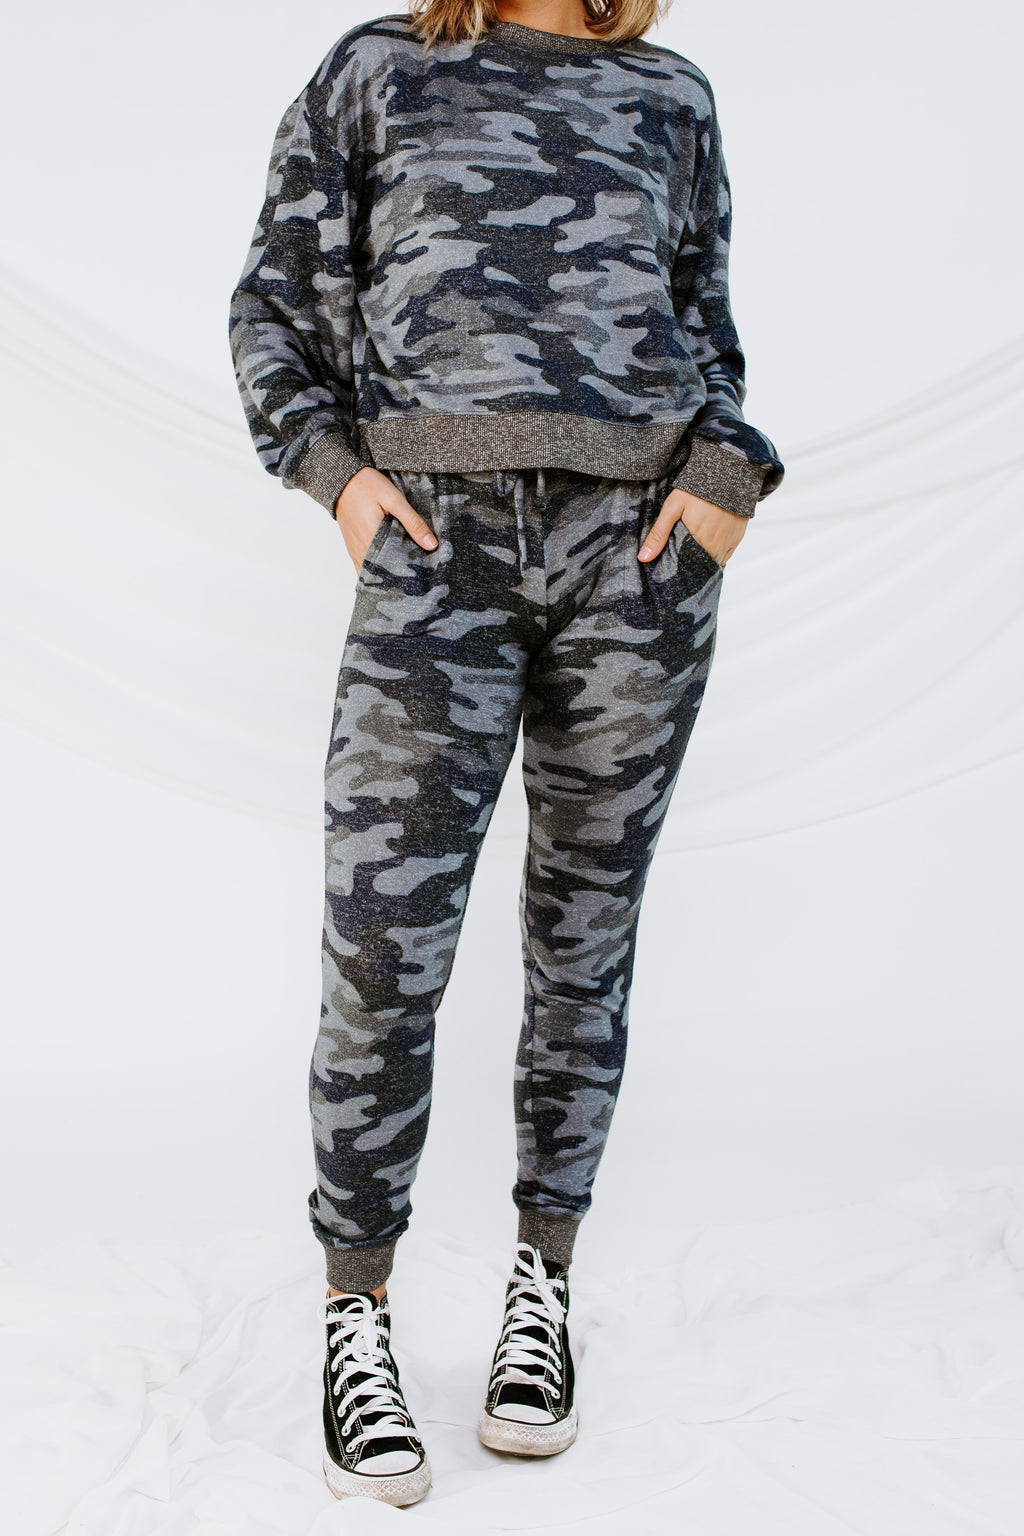 Z Supply Mina Marled Camo Jogger